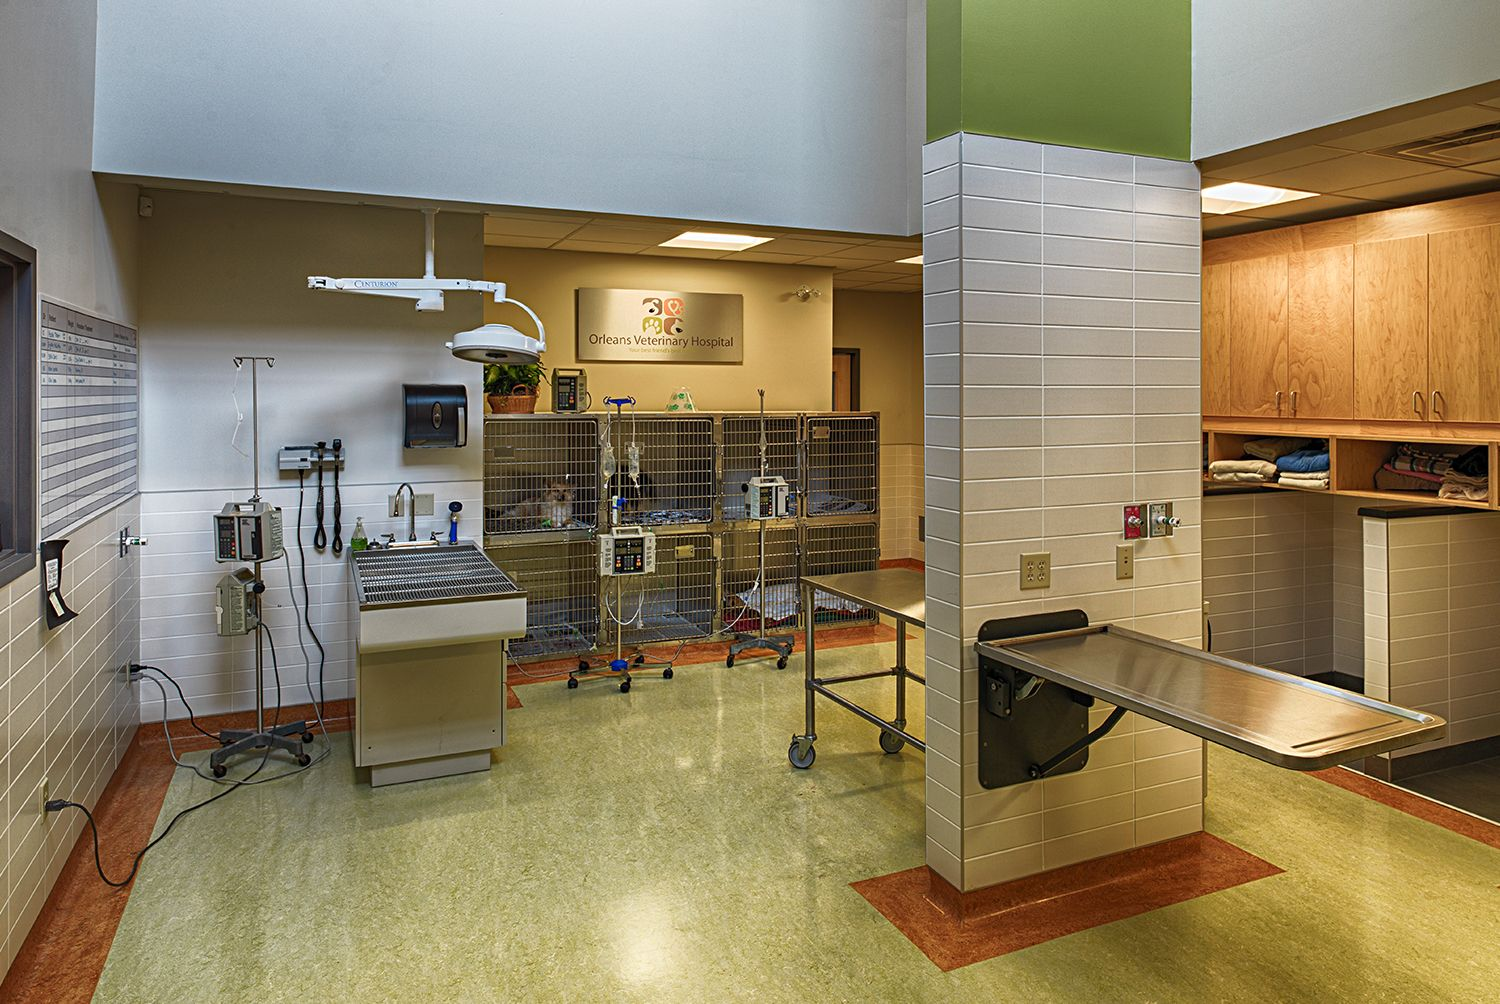 Orleans Veterinary Hospital Dreessen Cardinal Architects Inc Veterinary Hospital Hospital Design Veterinary